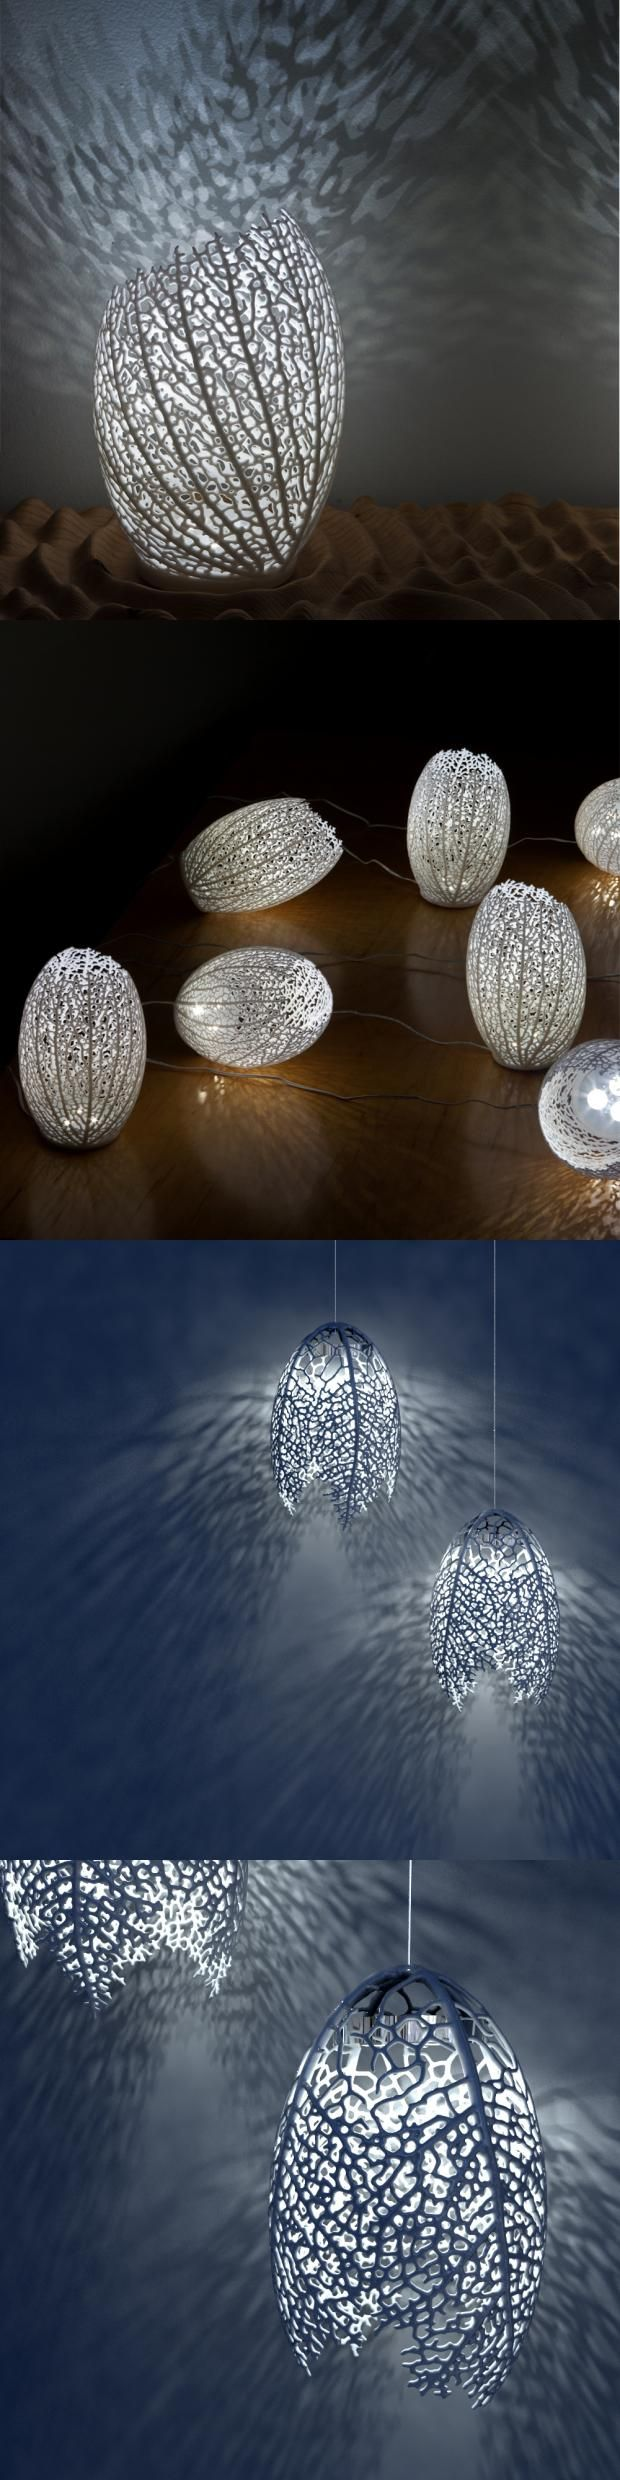 The Hyphae lamp is a series of organic table lamps based on how veins form in leaves. Each lamp is a completely one-of-a-kind design 3D-printed in nylon plastic. The lamps are lit by eco-friendly LED's and cast dramatic branching shadows on the wall and ceiling.